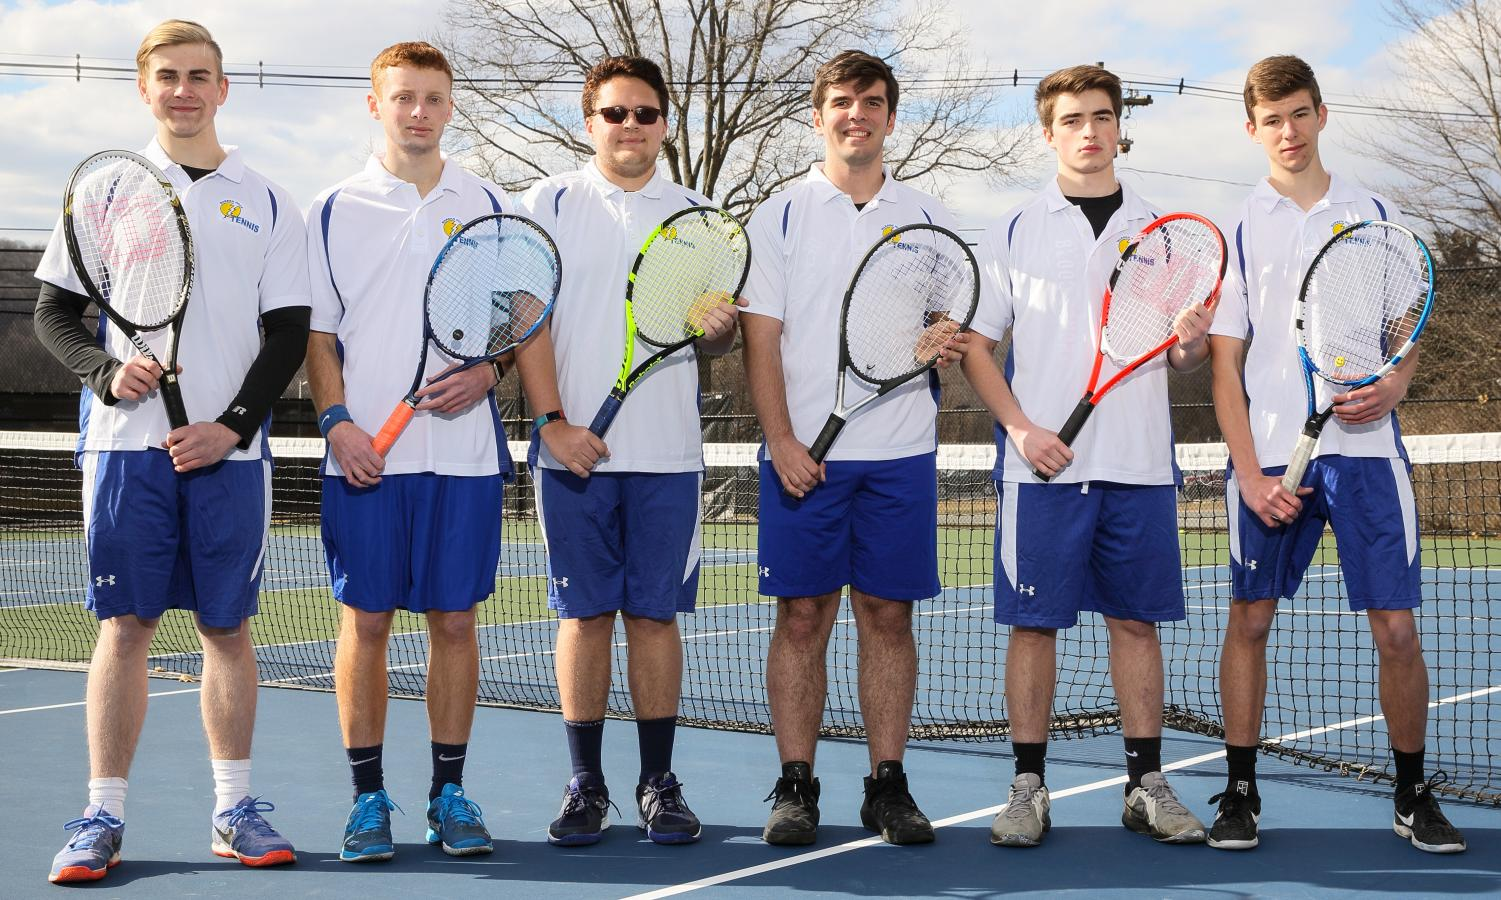 The boys tennis seniors have grown together for the last 4 years to accomplish their best season on the court yet after an offseason full of hard work. (Photo courtesy of Lamaton Yearbook)